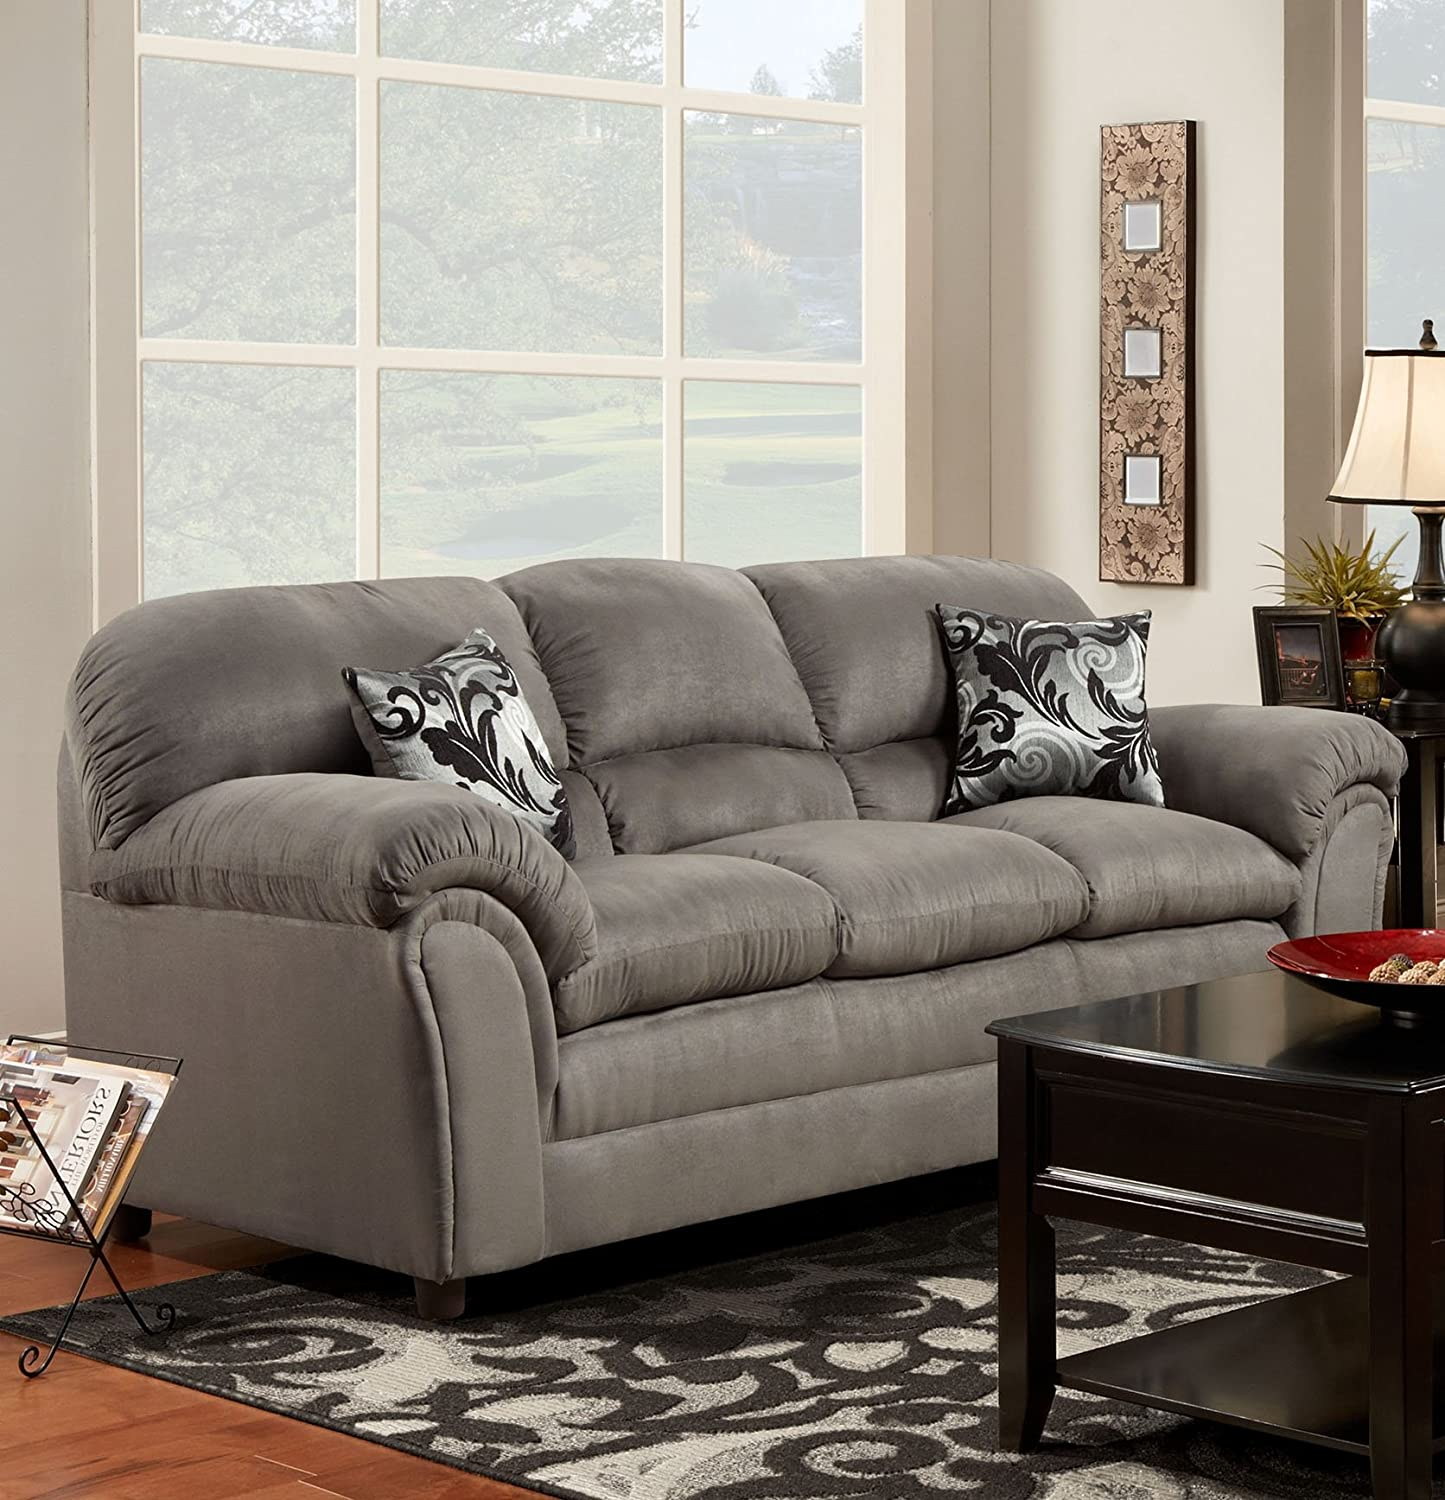 Amazon Chelsea Home Furniture Joyce Sofa Victory Lane